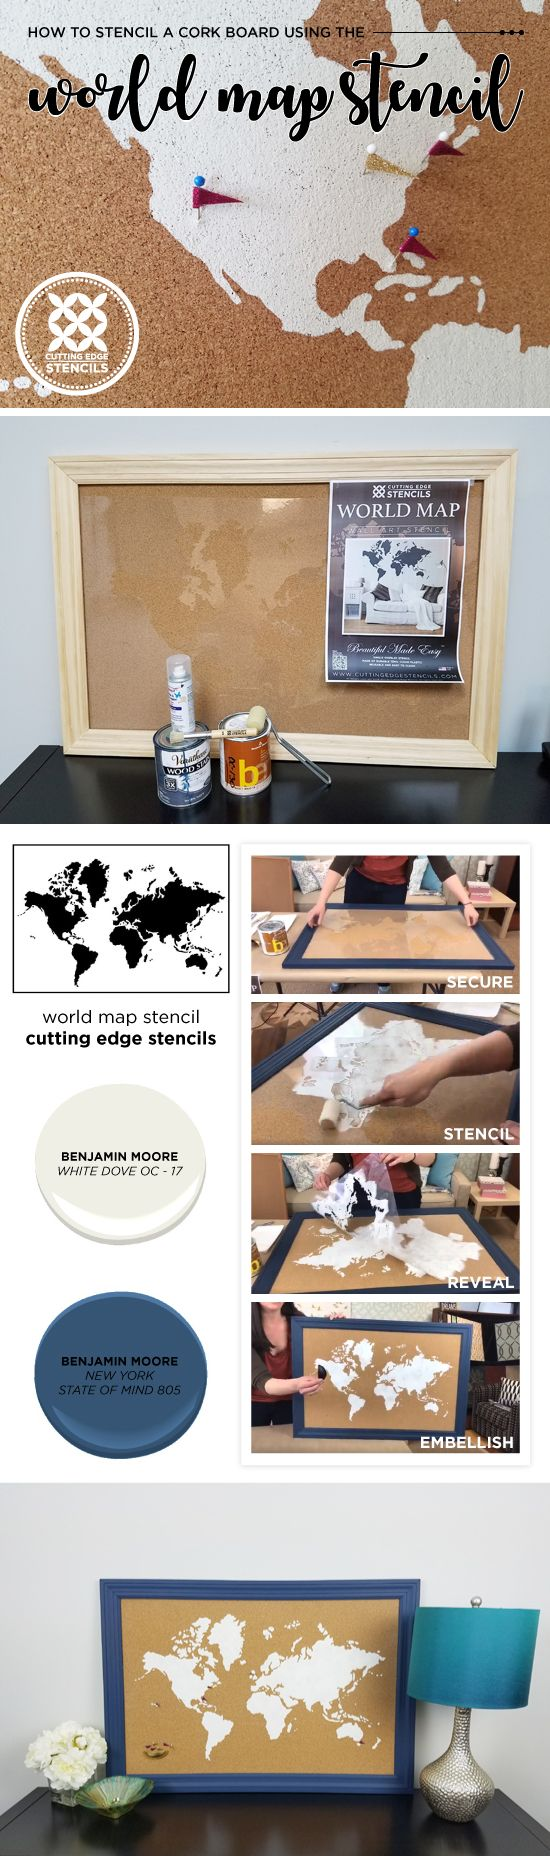 Cutting edge stencils shares how to stencil a cork board using the cutting edge stencils shares how to stencil a cork board using the world map wall art gumiabroncs Image collections